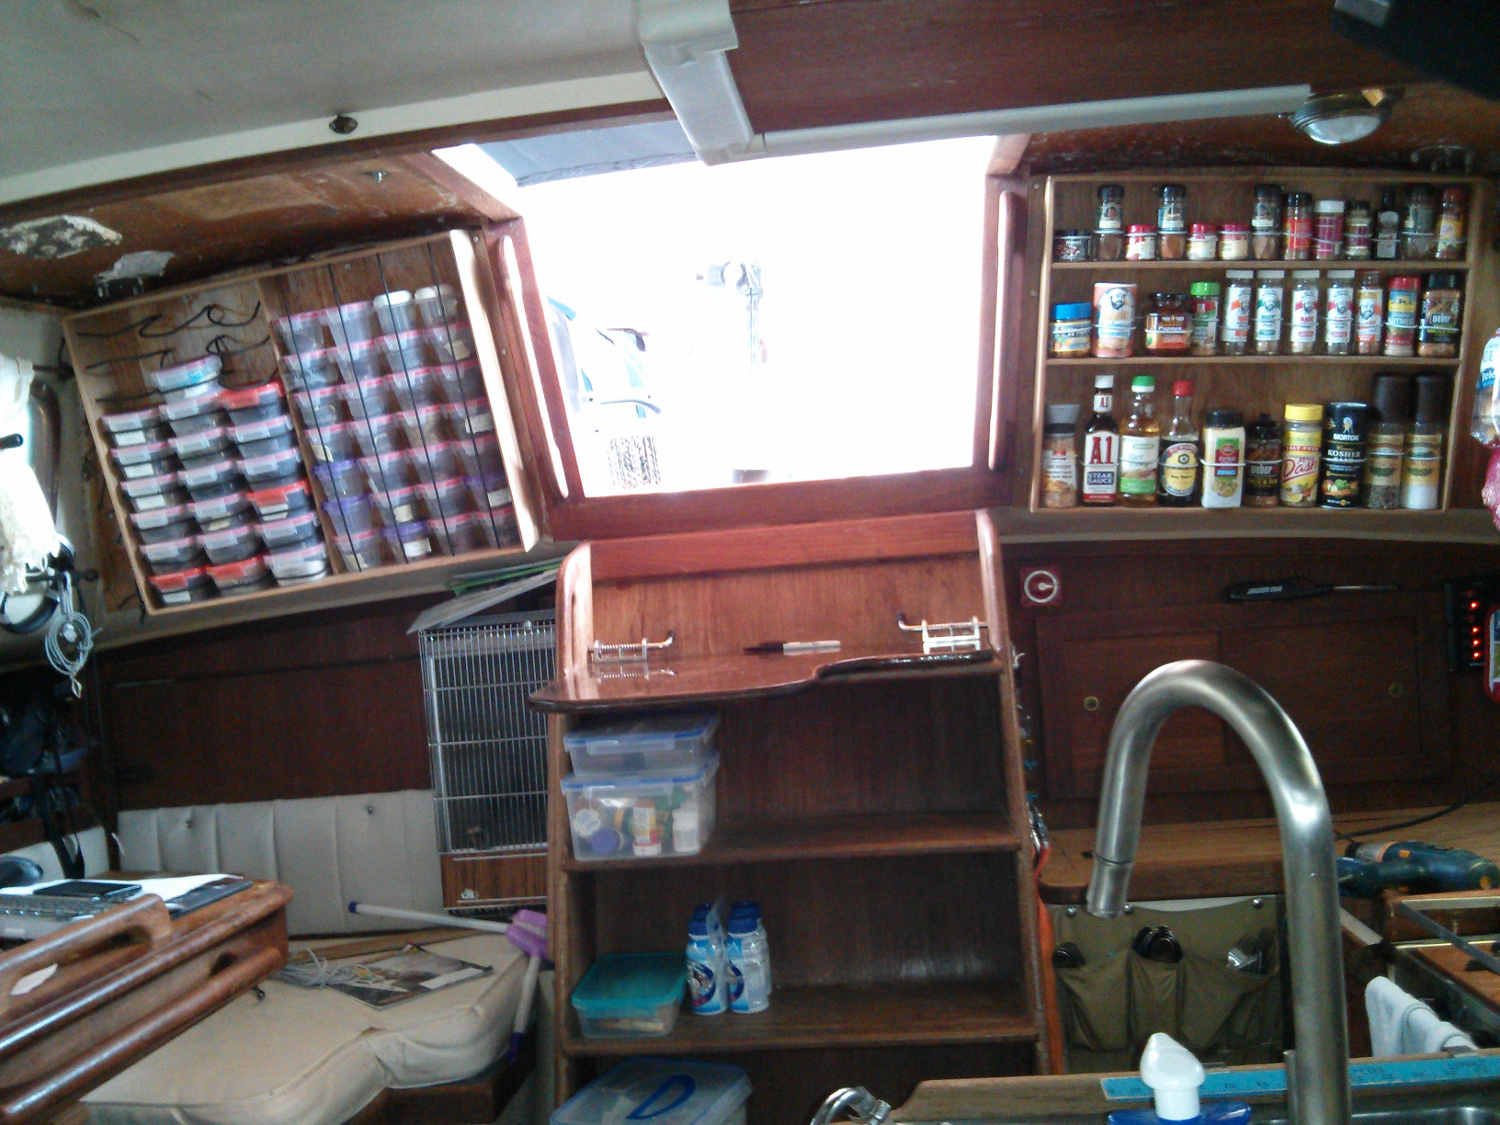 The Ergonomics Of Living On A Boat Spice And Tea Racks